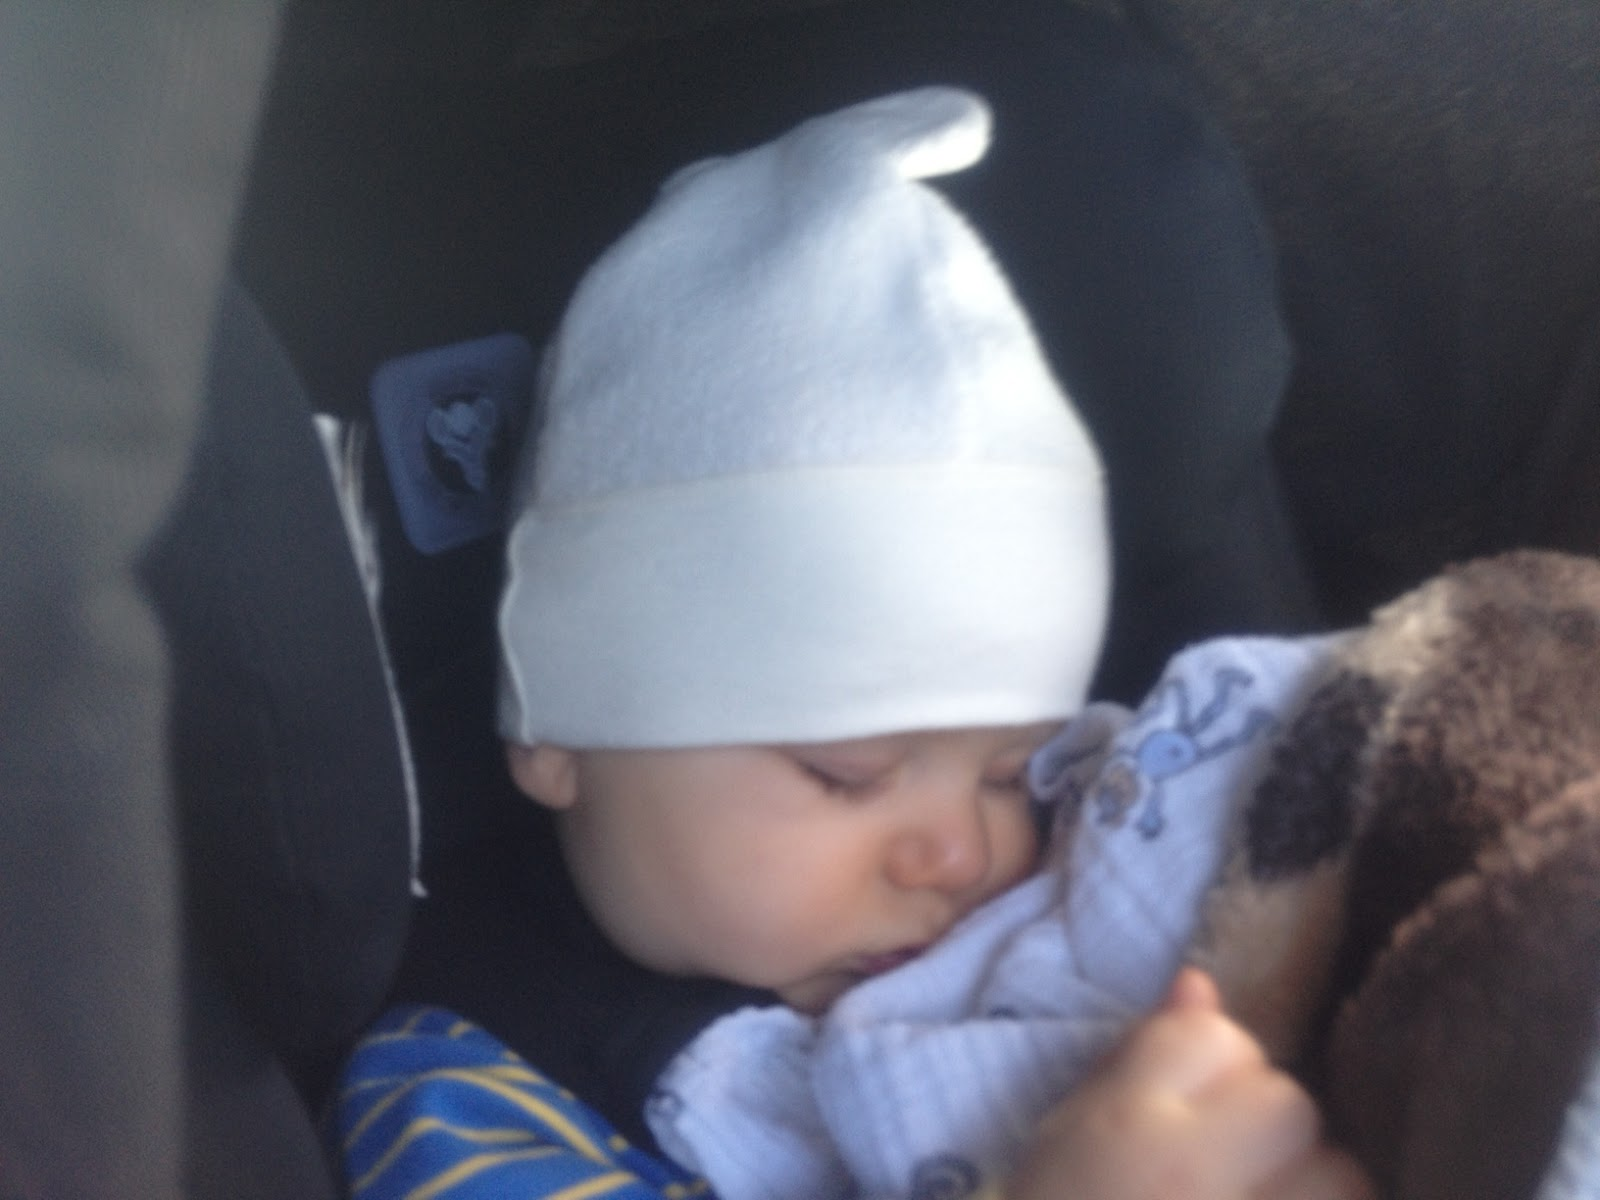 Starting a new trend  sideways-hat-wearing while sleeping. a32c58a4798